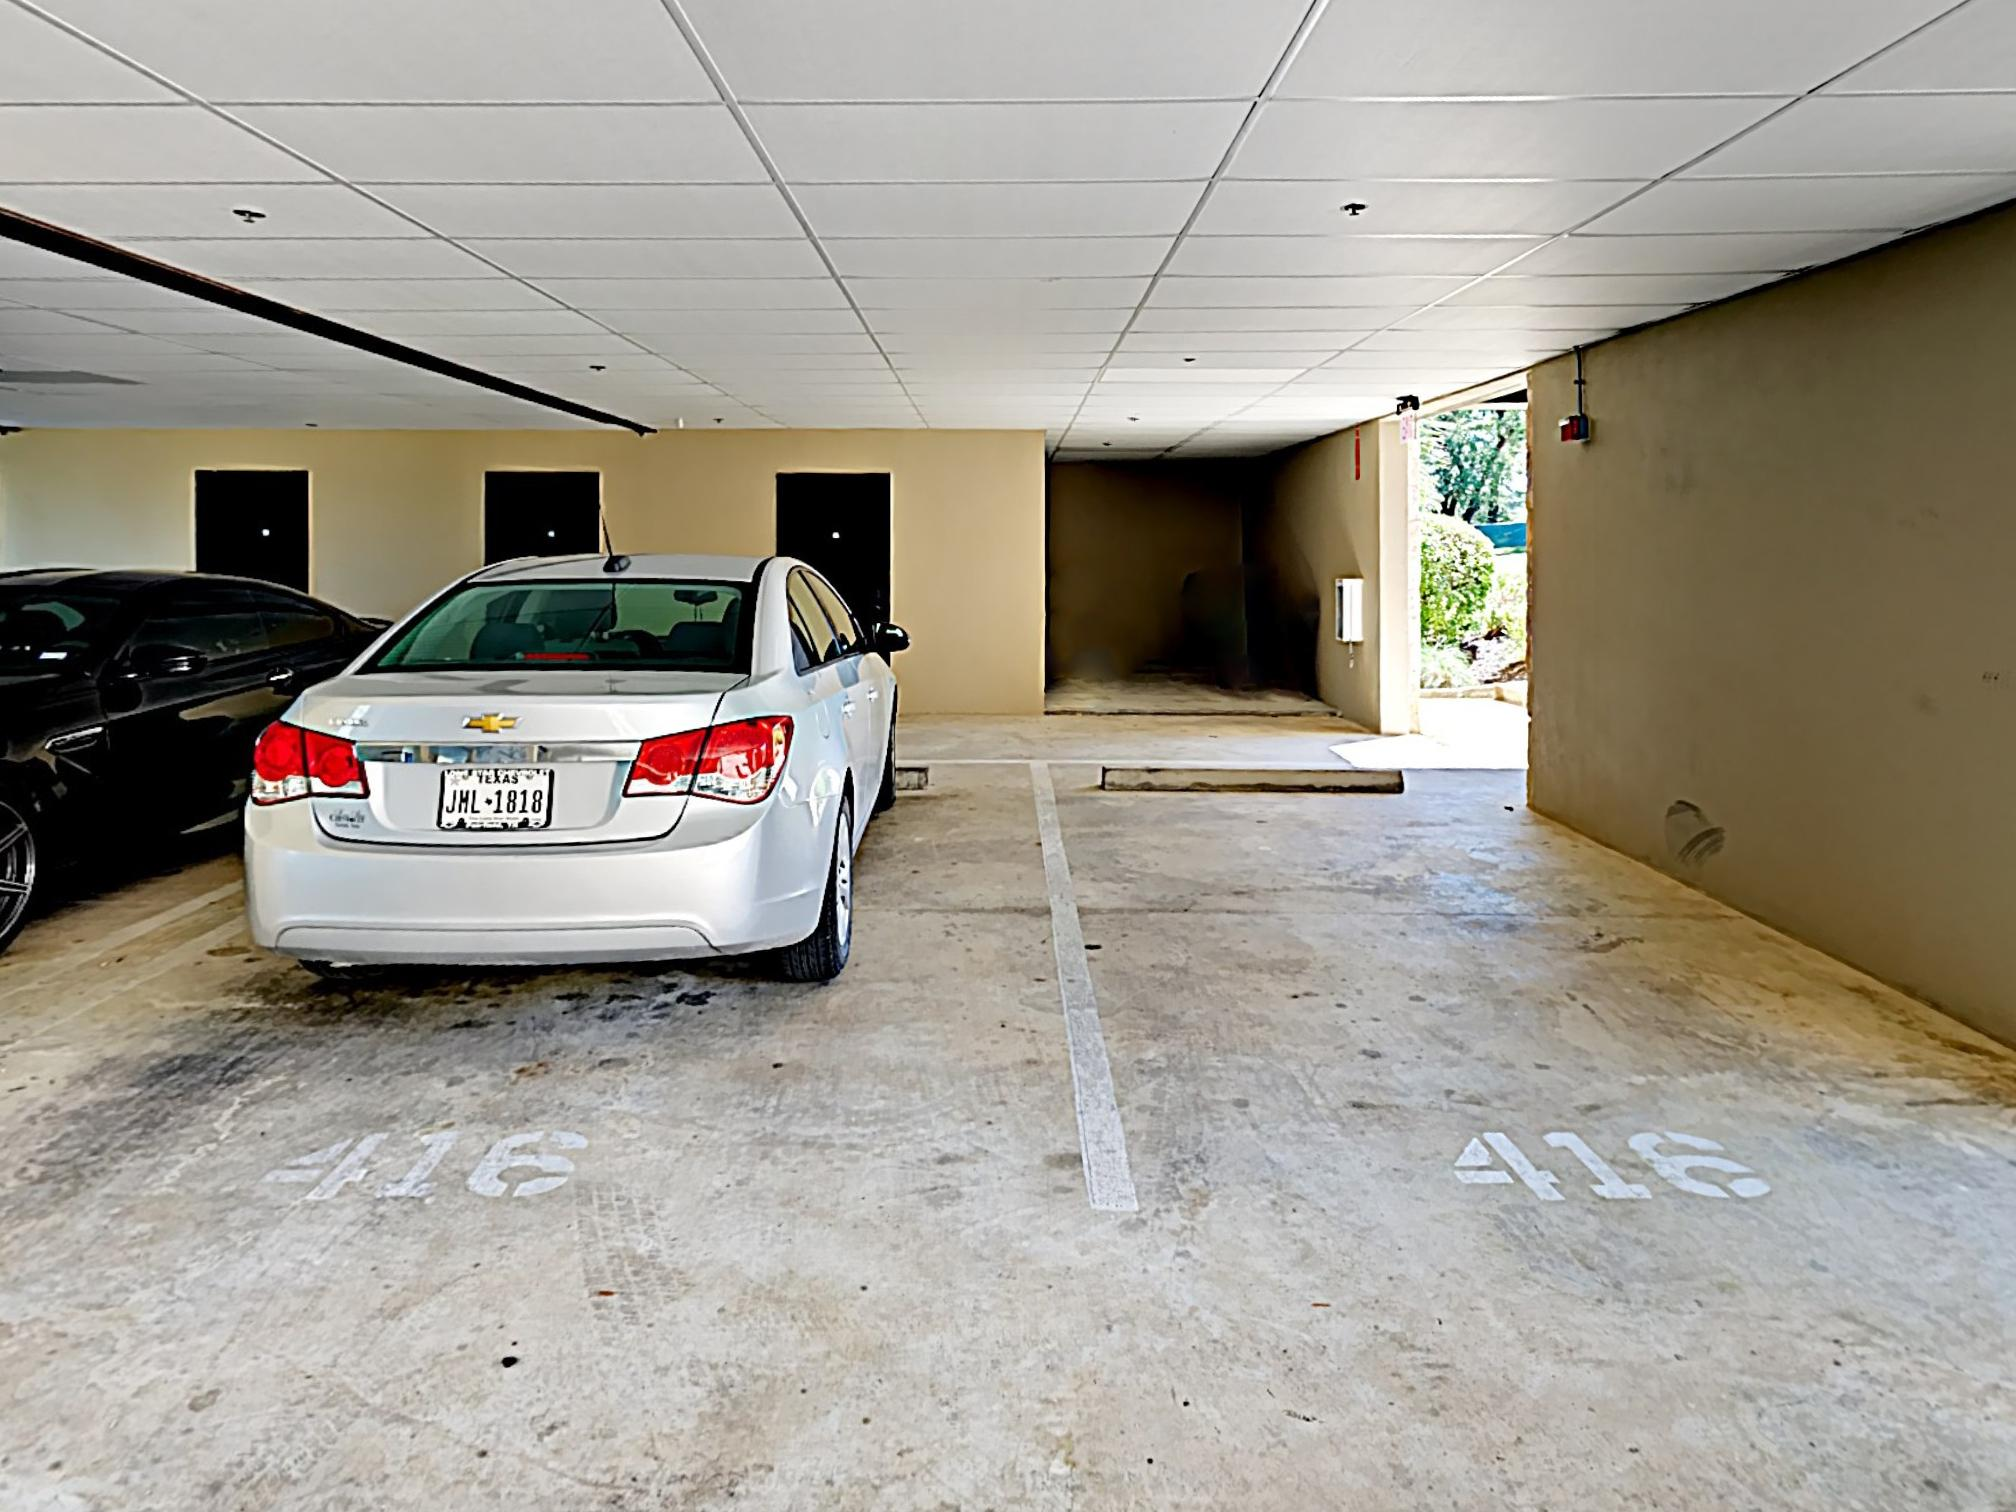 Guest amenities include reserved parking for up to 2 vehicles.